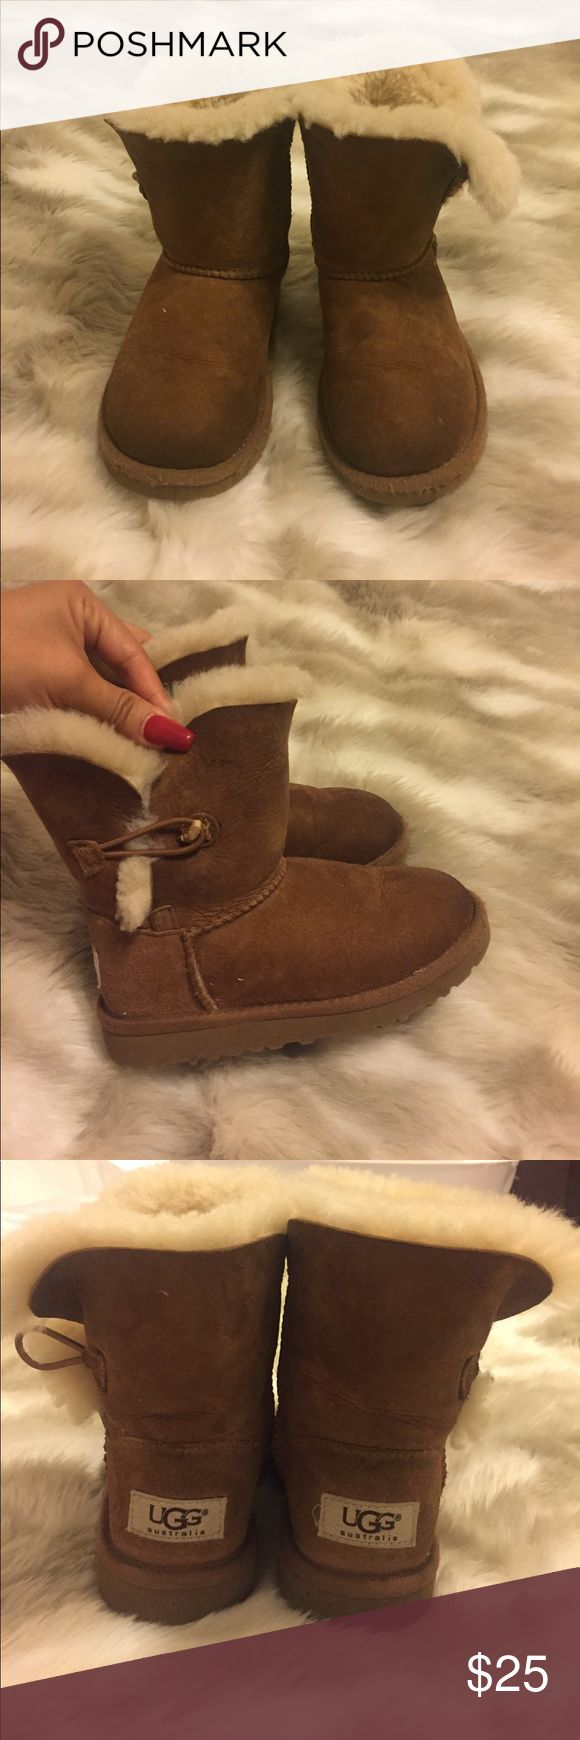 Girls Ugg Boots in Camel Worn condition but still pretty good shape! Cute girls Ugg boots! One button missing as pictured and the other almost gone. I am sure you can sew a new one on for the band to clasp onto very easily. UGG Shoes Boots